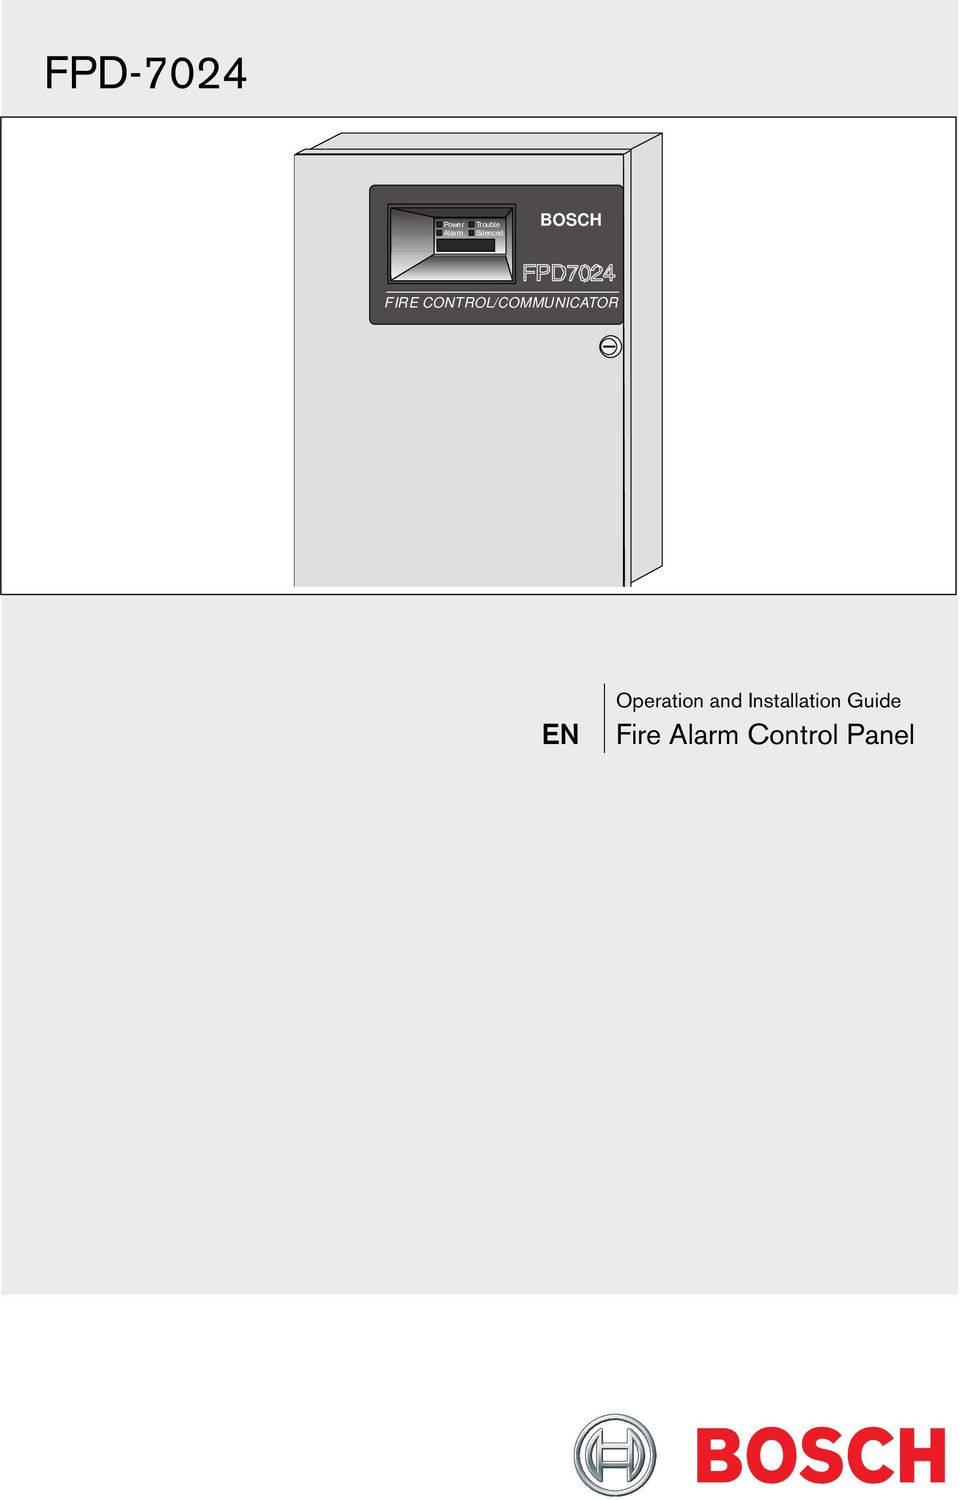 Fpd fire alarm control panel. Operation and installation guide.